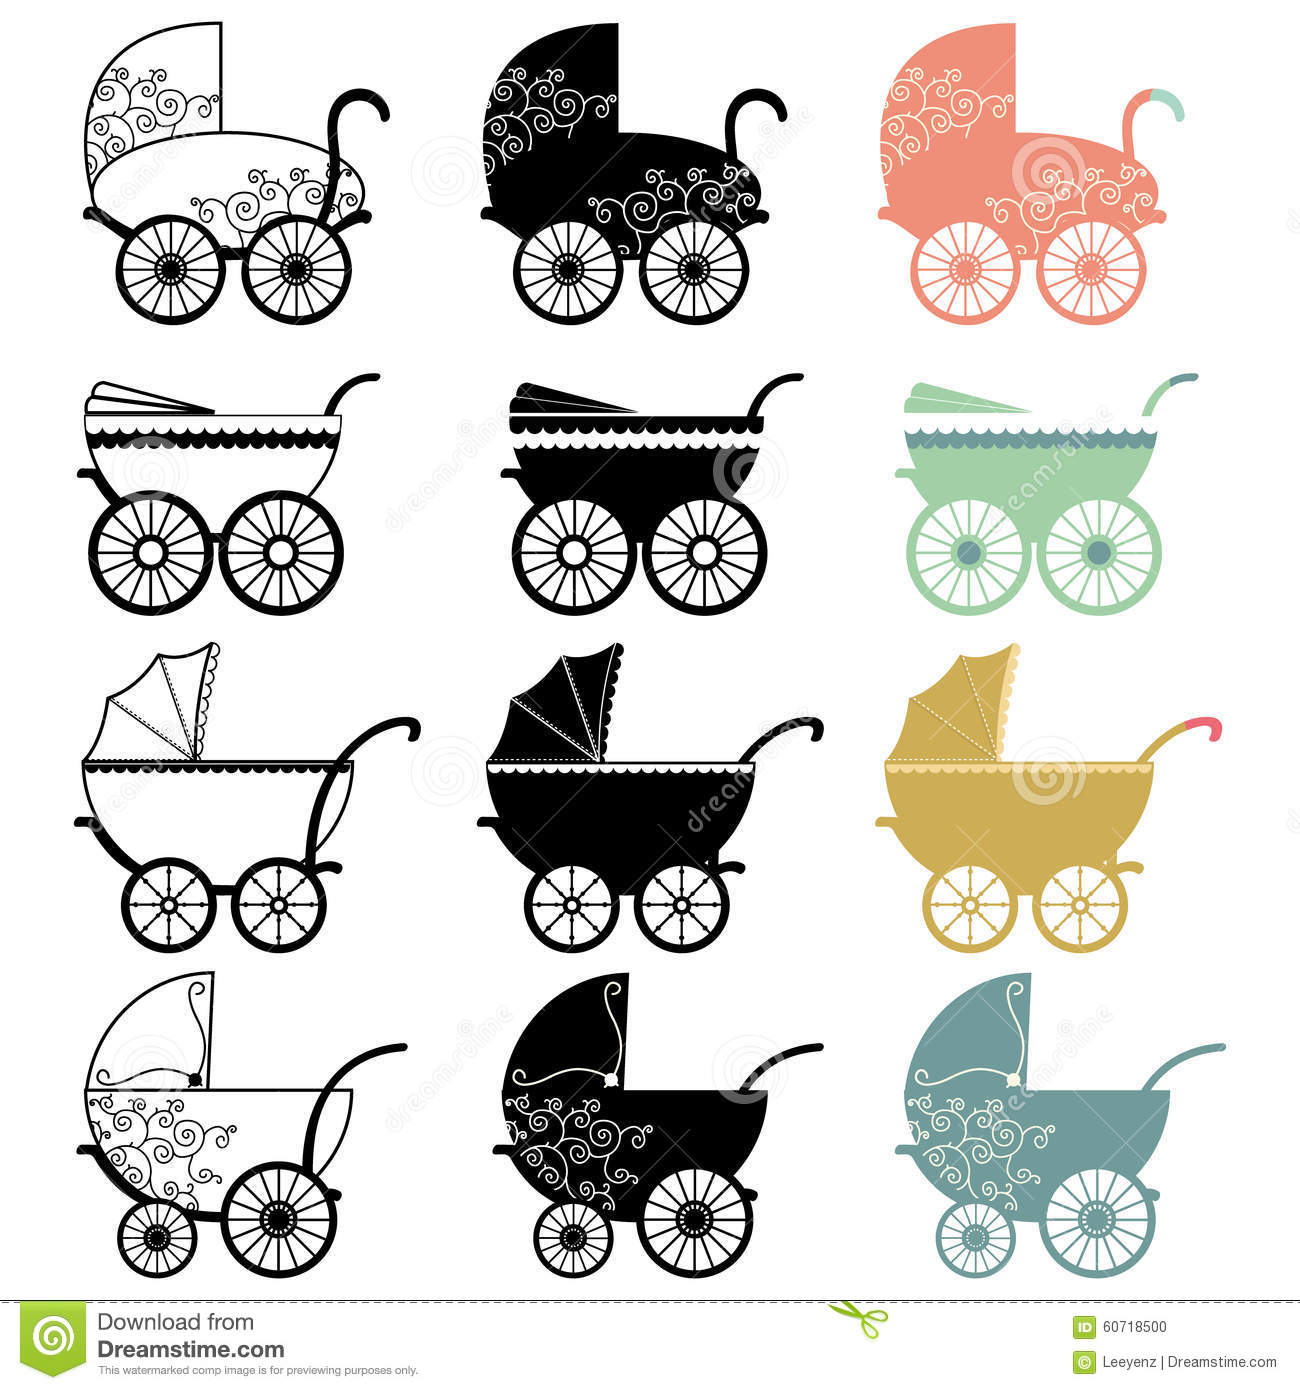 Vintage Baby Carriage Stock Vector - Image: 60718500